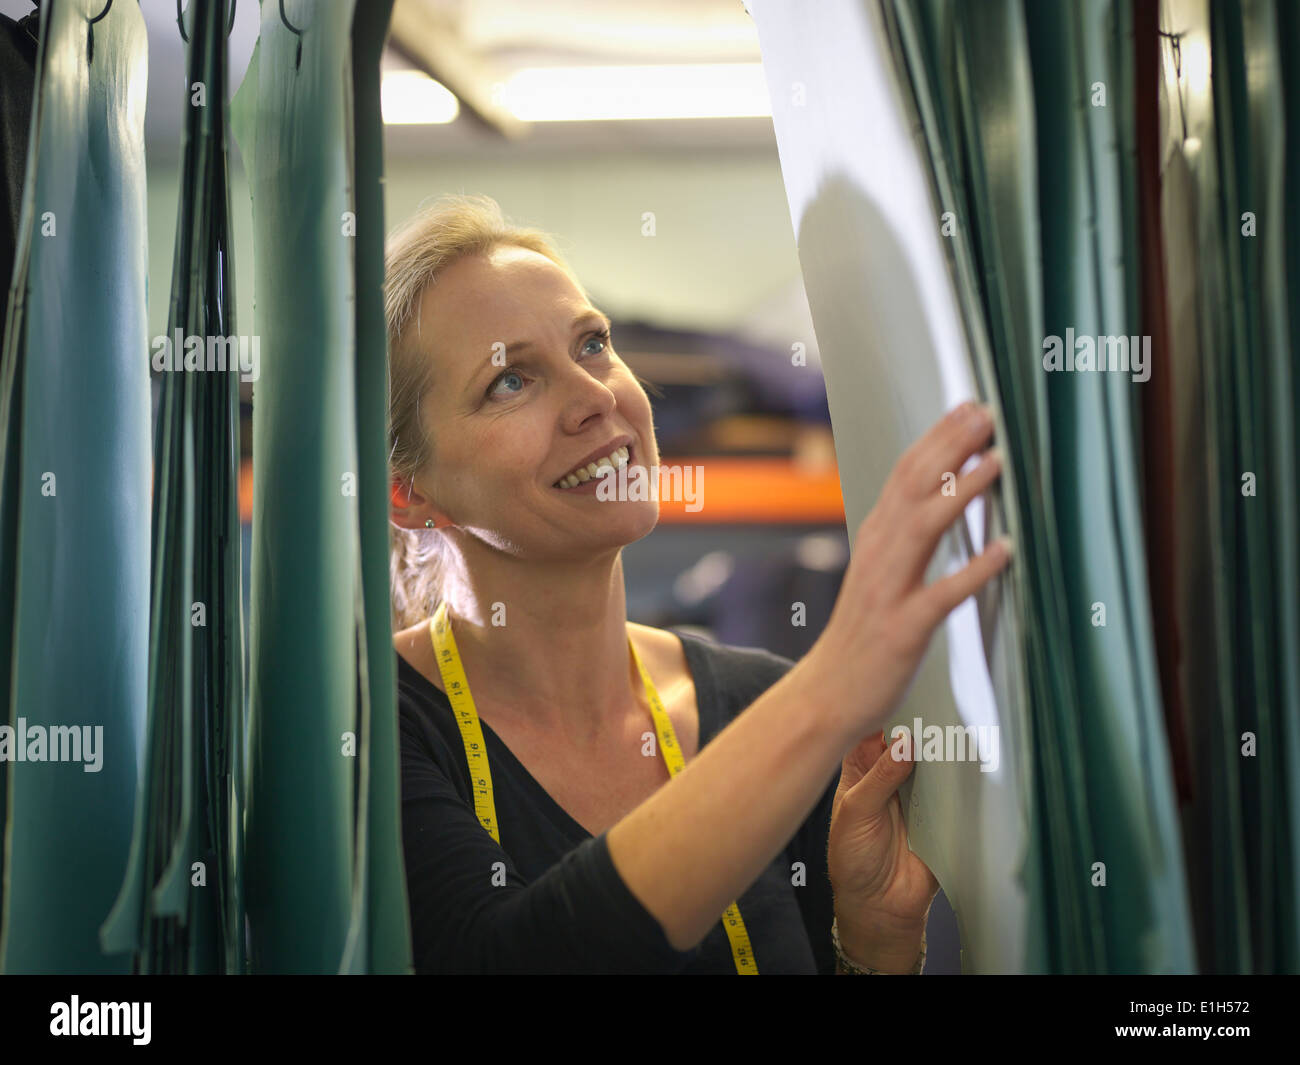 Female worker inspecting patterns in clothing factory Stock Photo